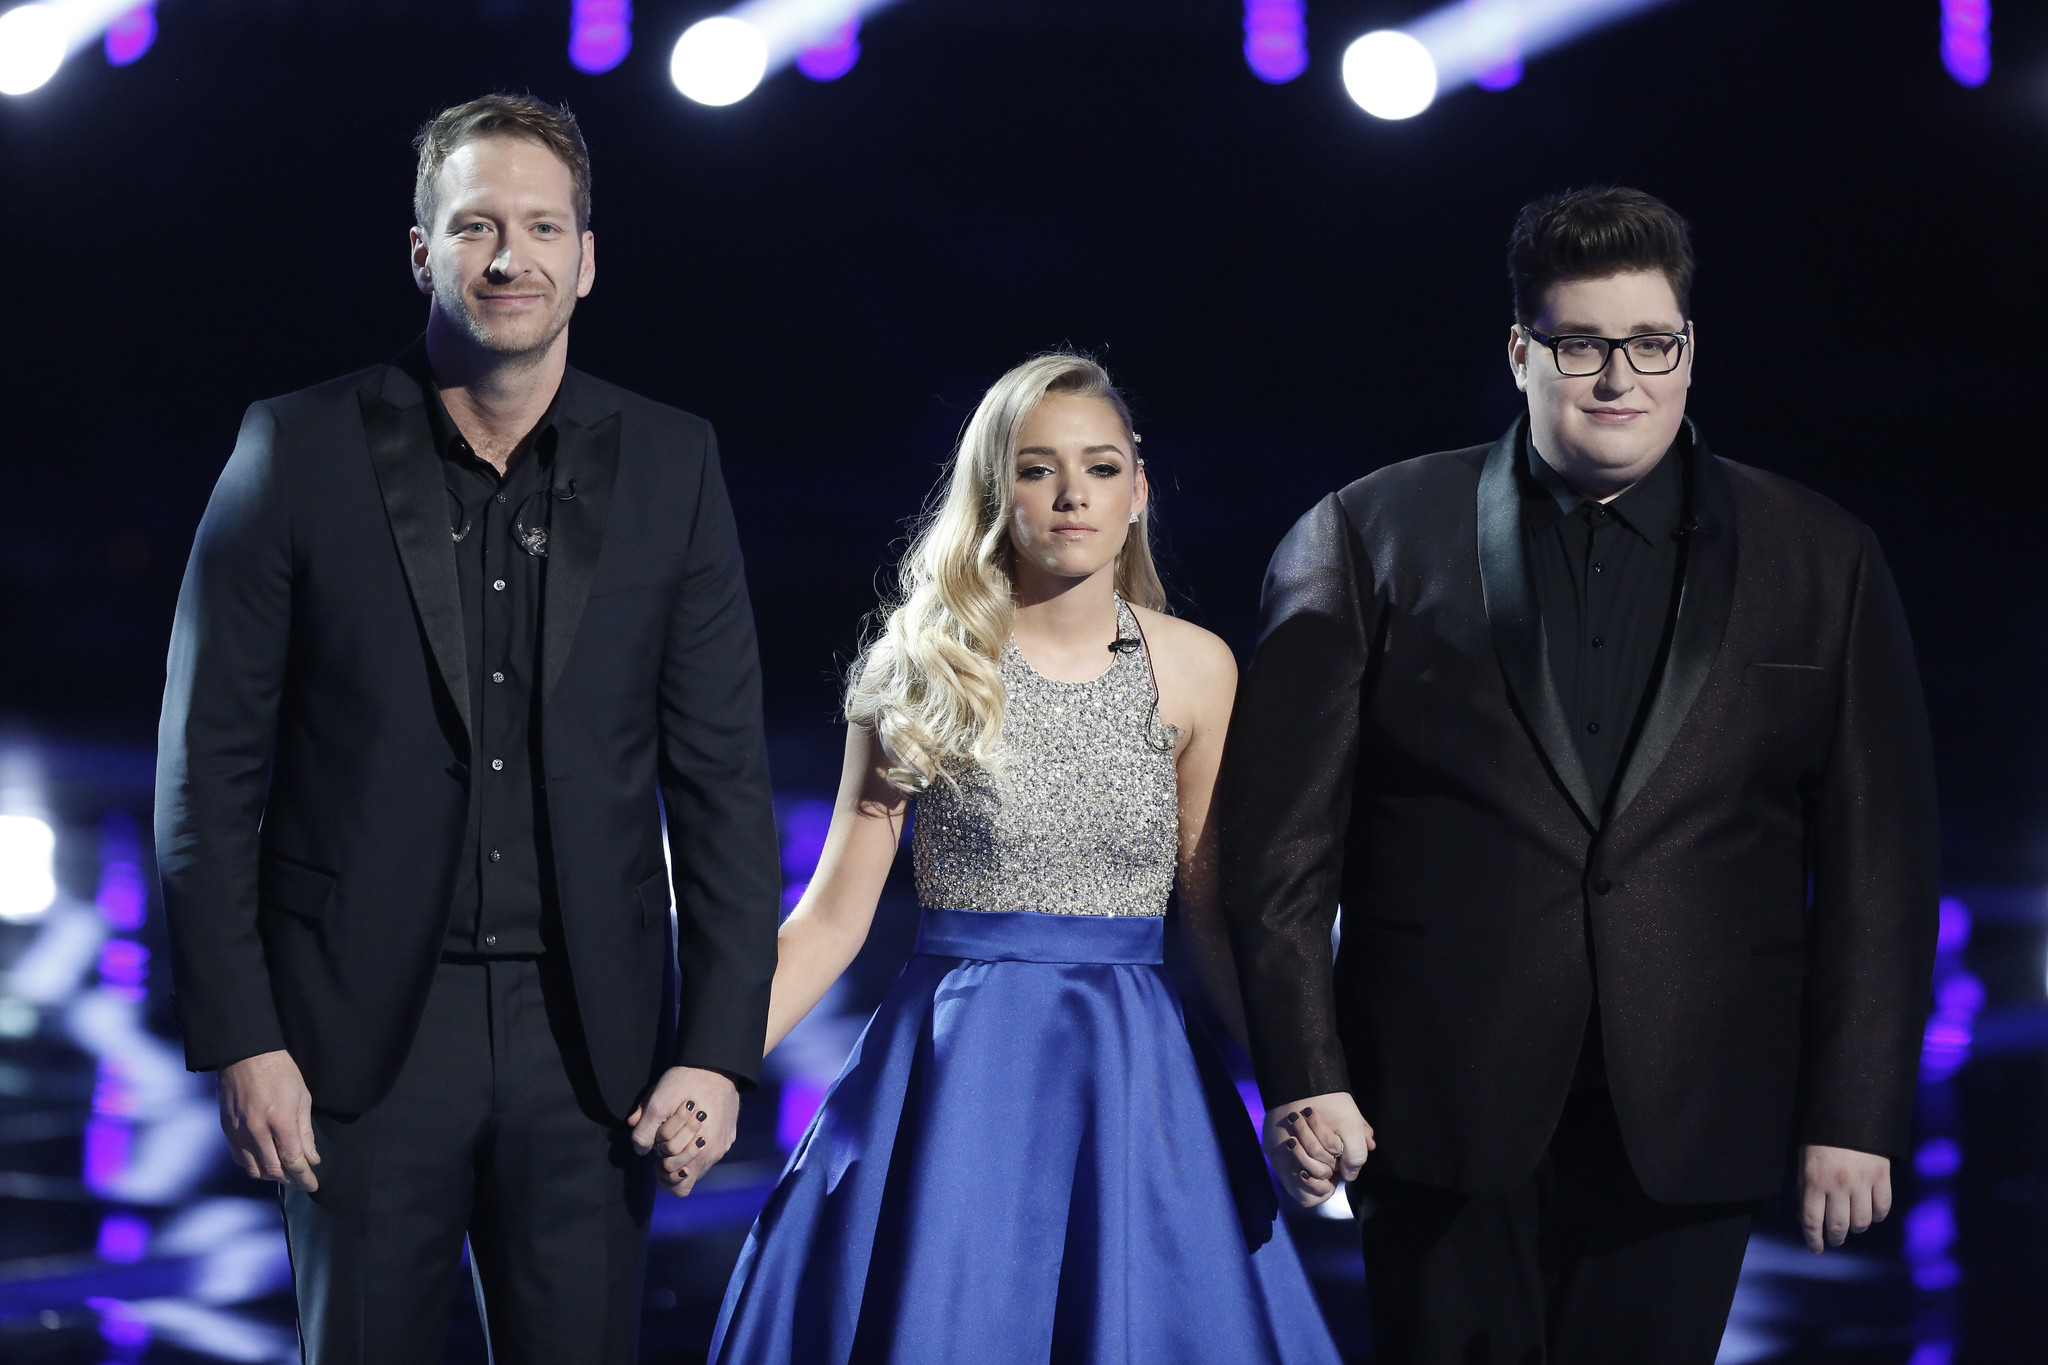 the voice recap season 9 winner revealed in star studded finale